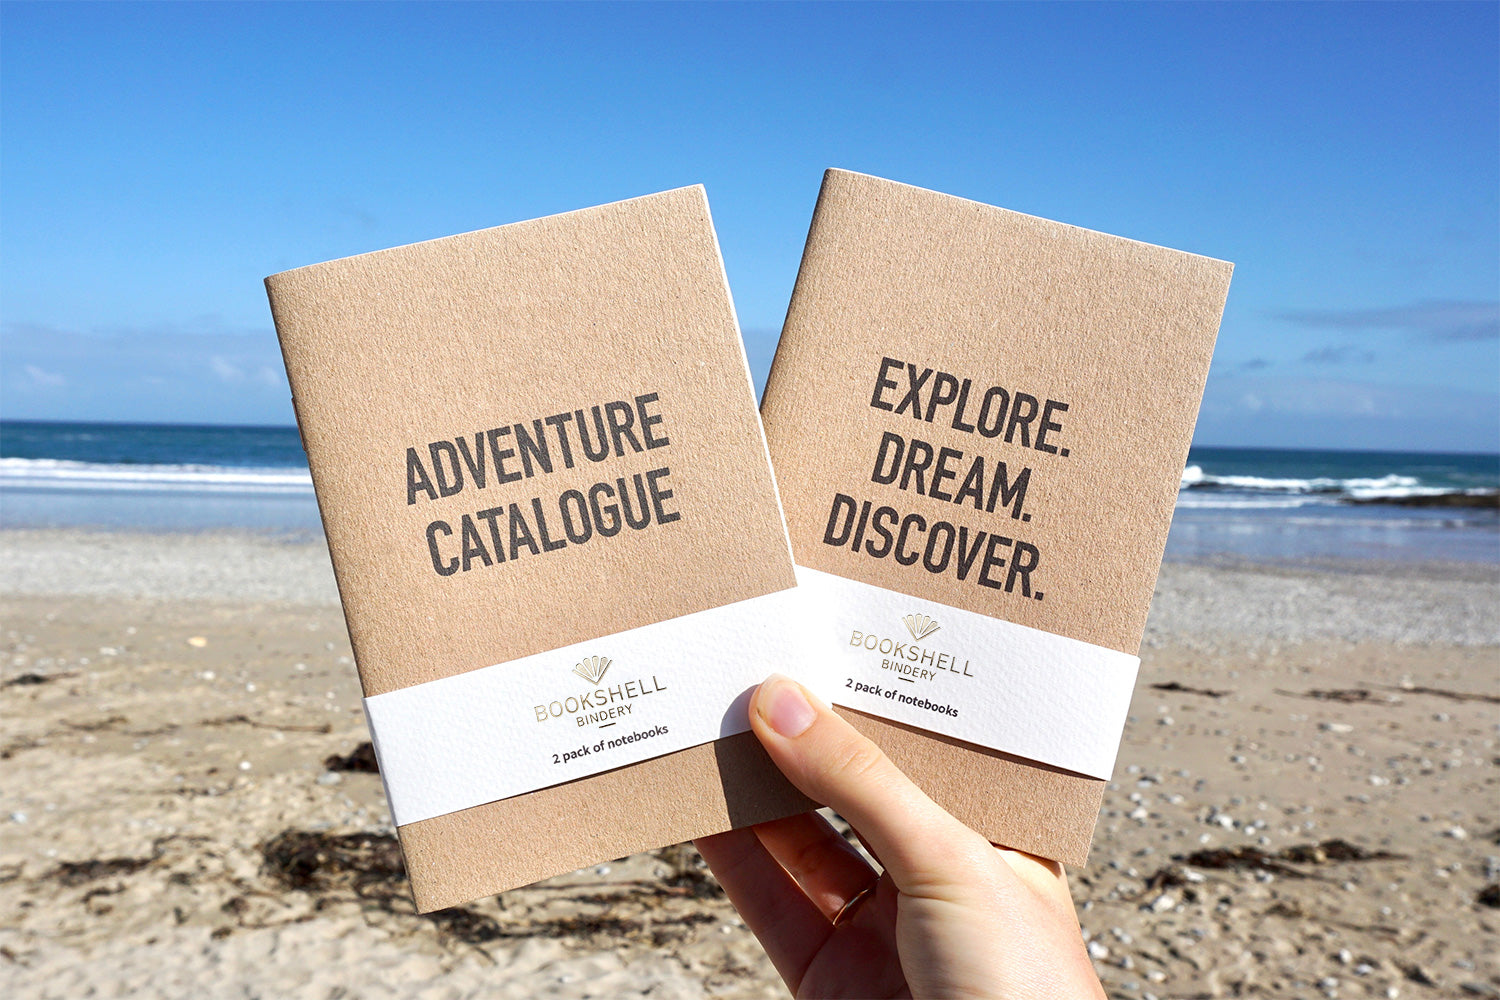 Travellers notebook, Explore. Dream. Discover, and Adventure Catalogue, from Bookshell